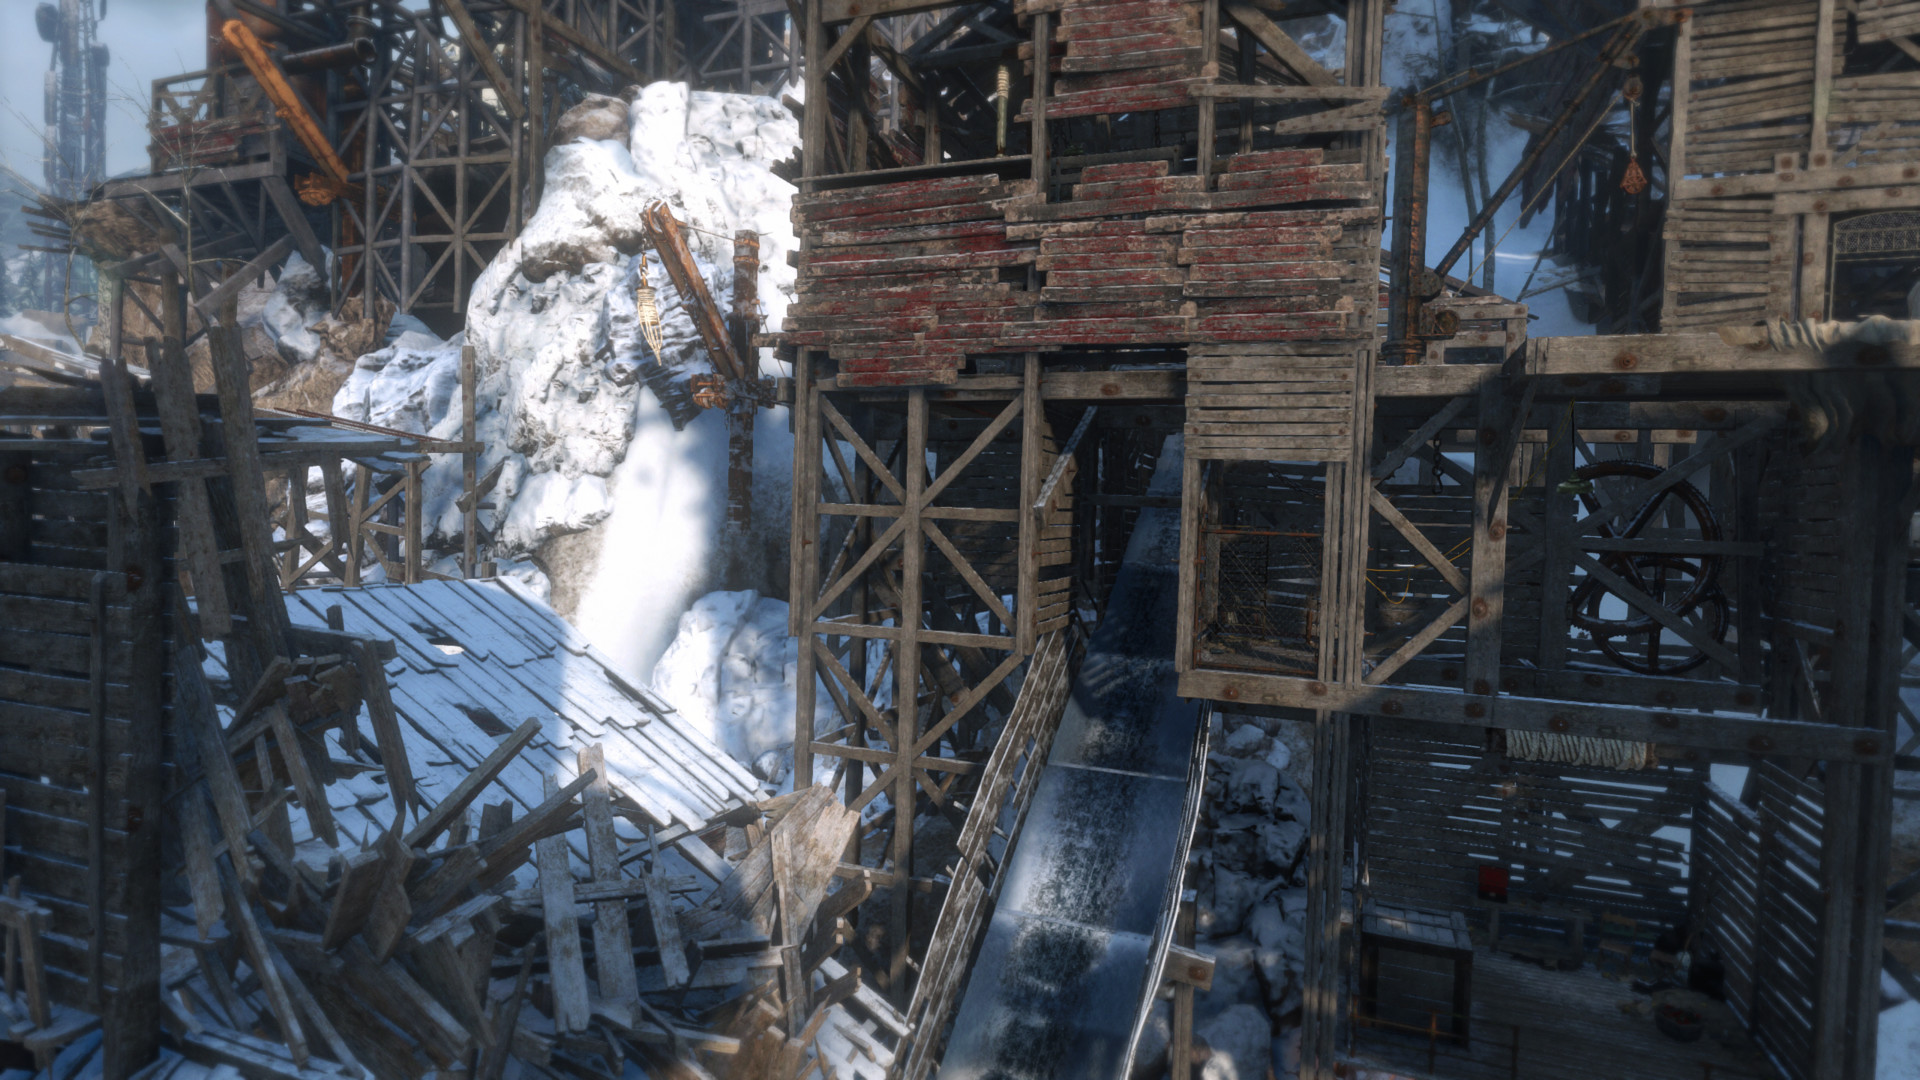 Akash dholakia rise of the tomb raider v1 0 build 668 1 64 7 17 2016 4 02 42 pm